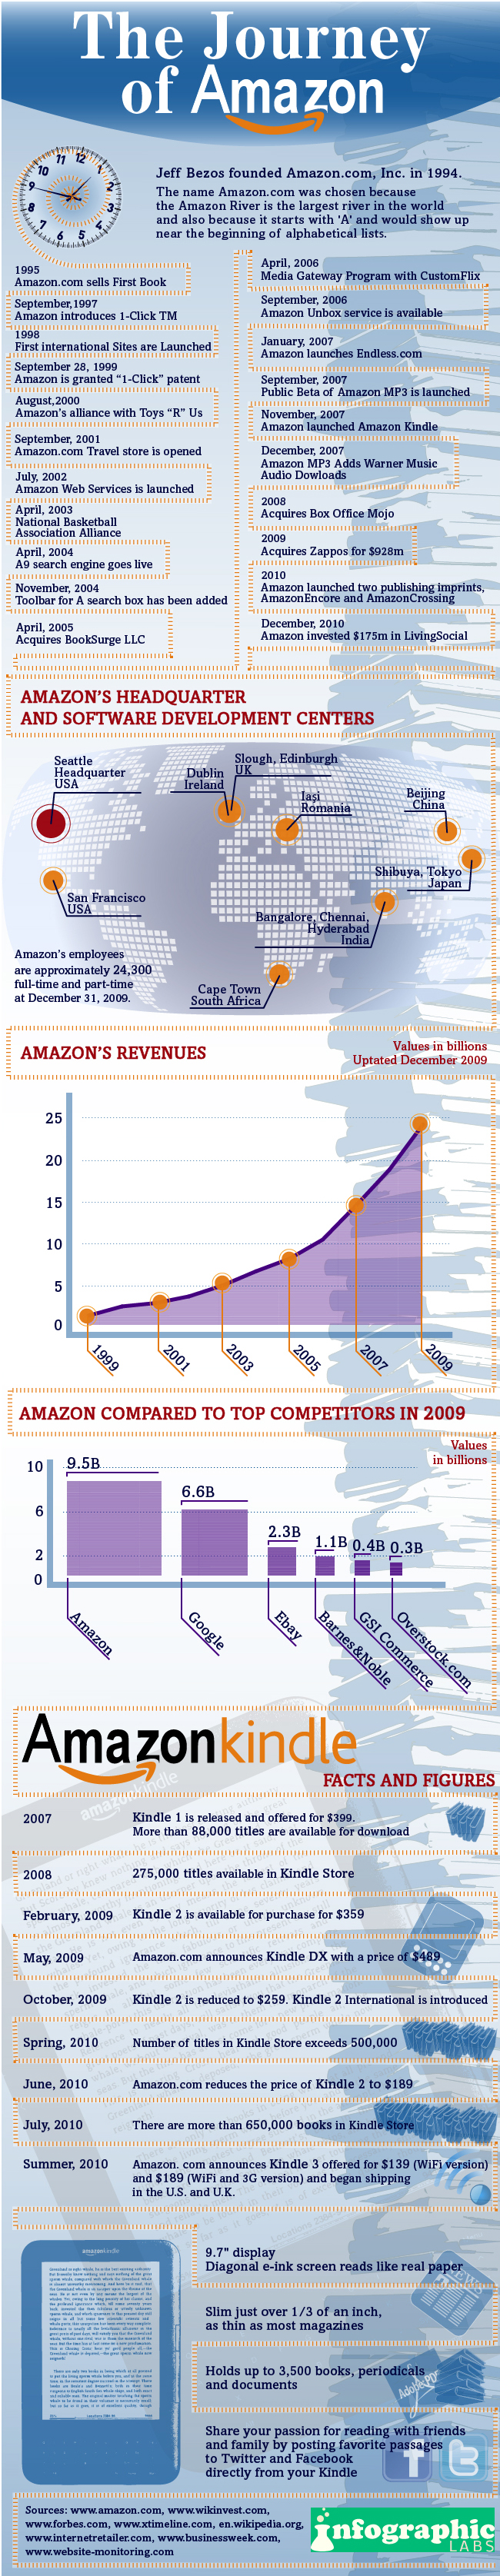 The Journey of Amazon